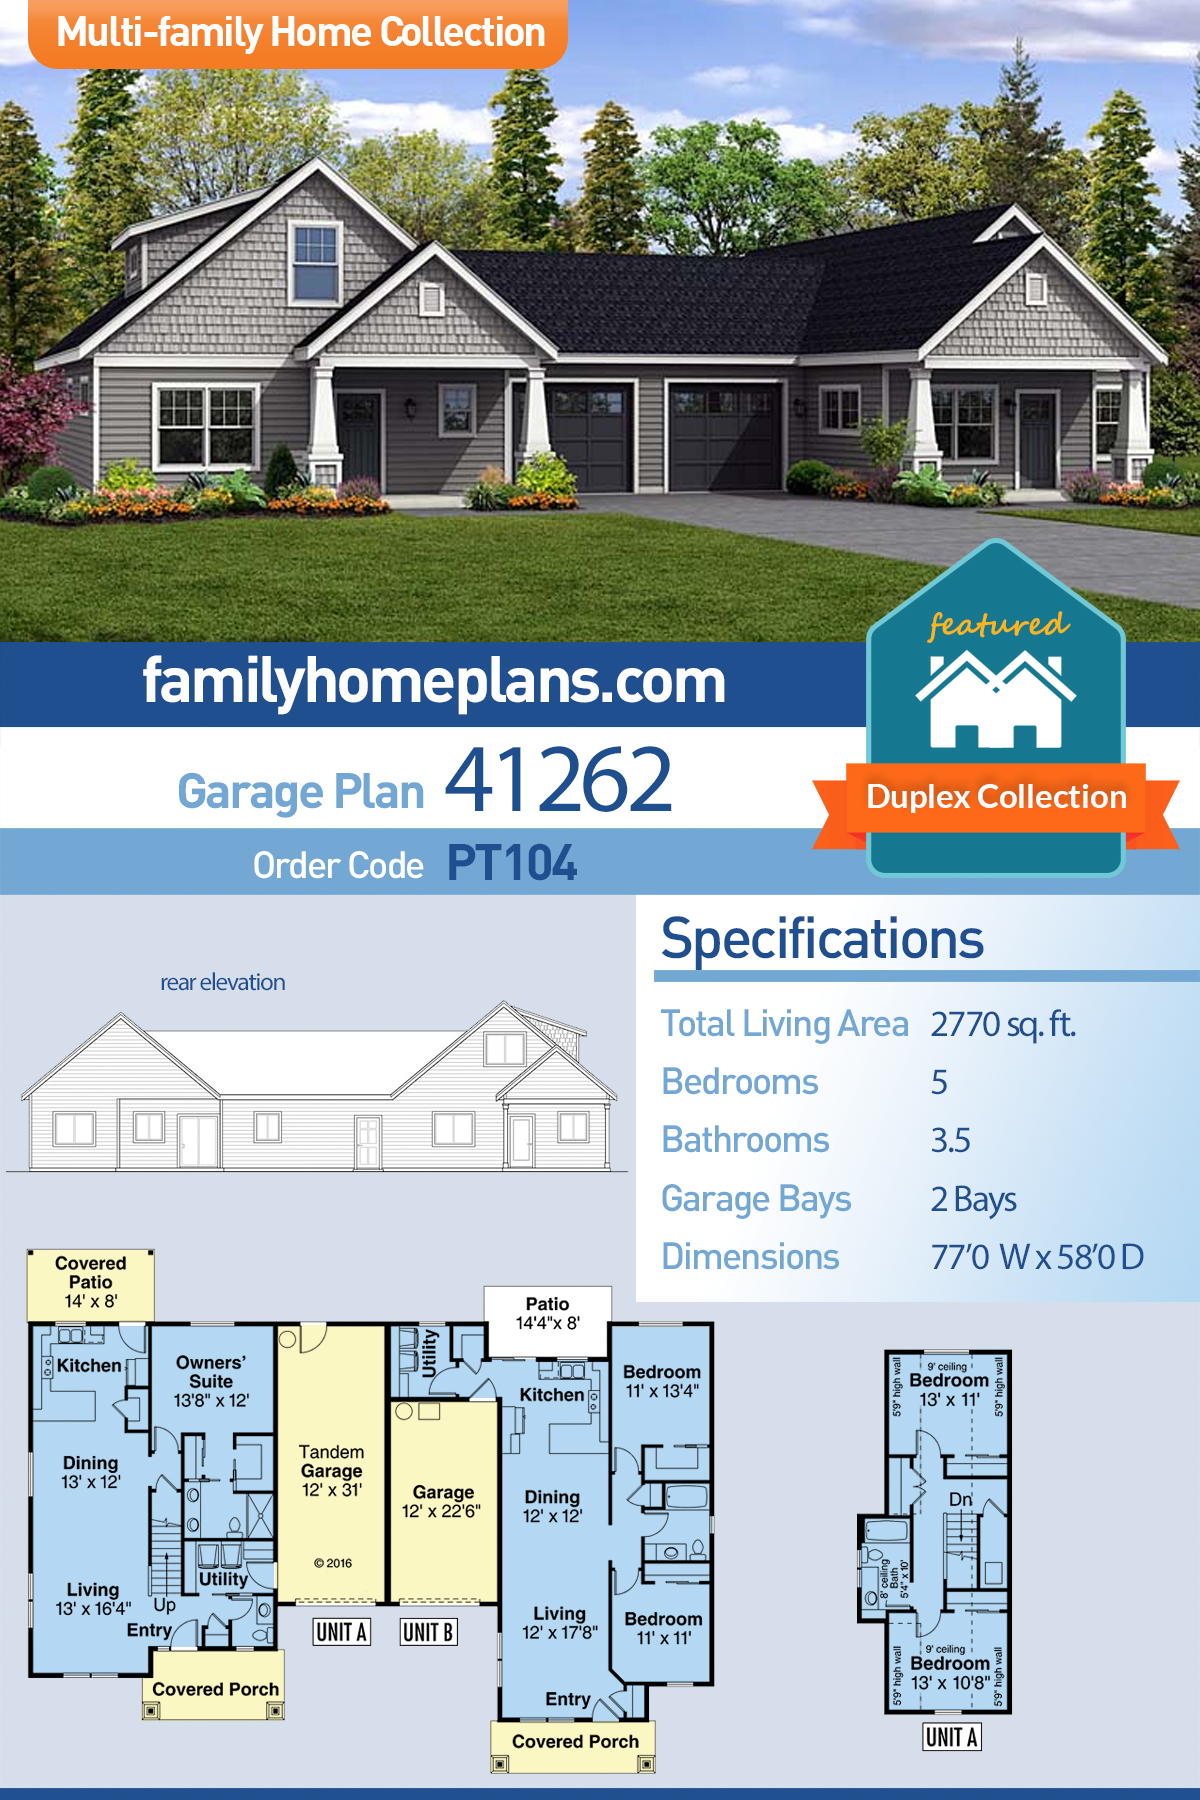 Cottage, Country, Craftsman Multi-Family Plan 41262 with 5 Beds, 4 Baths, 2 Car Garage